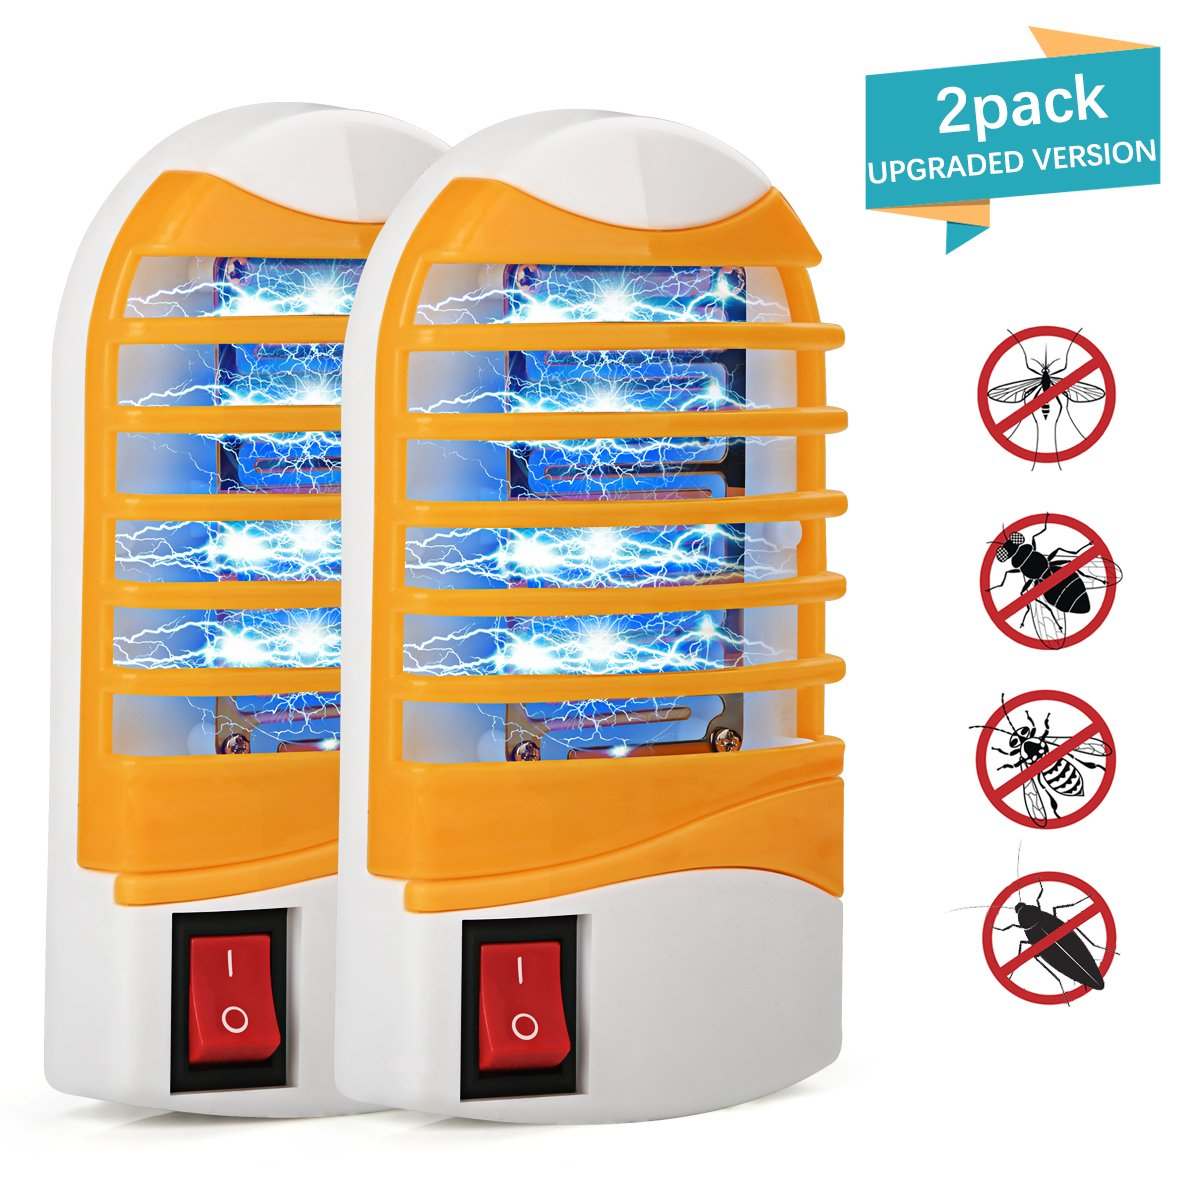 Kungber Bug Zapper Upgraded Mosquitoes Killer Indoor Mosquito Killerelectric Killerinsect Killermosquito Light Plug In Electronic Insect Gnat Flying Bugs Trap